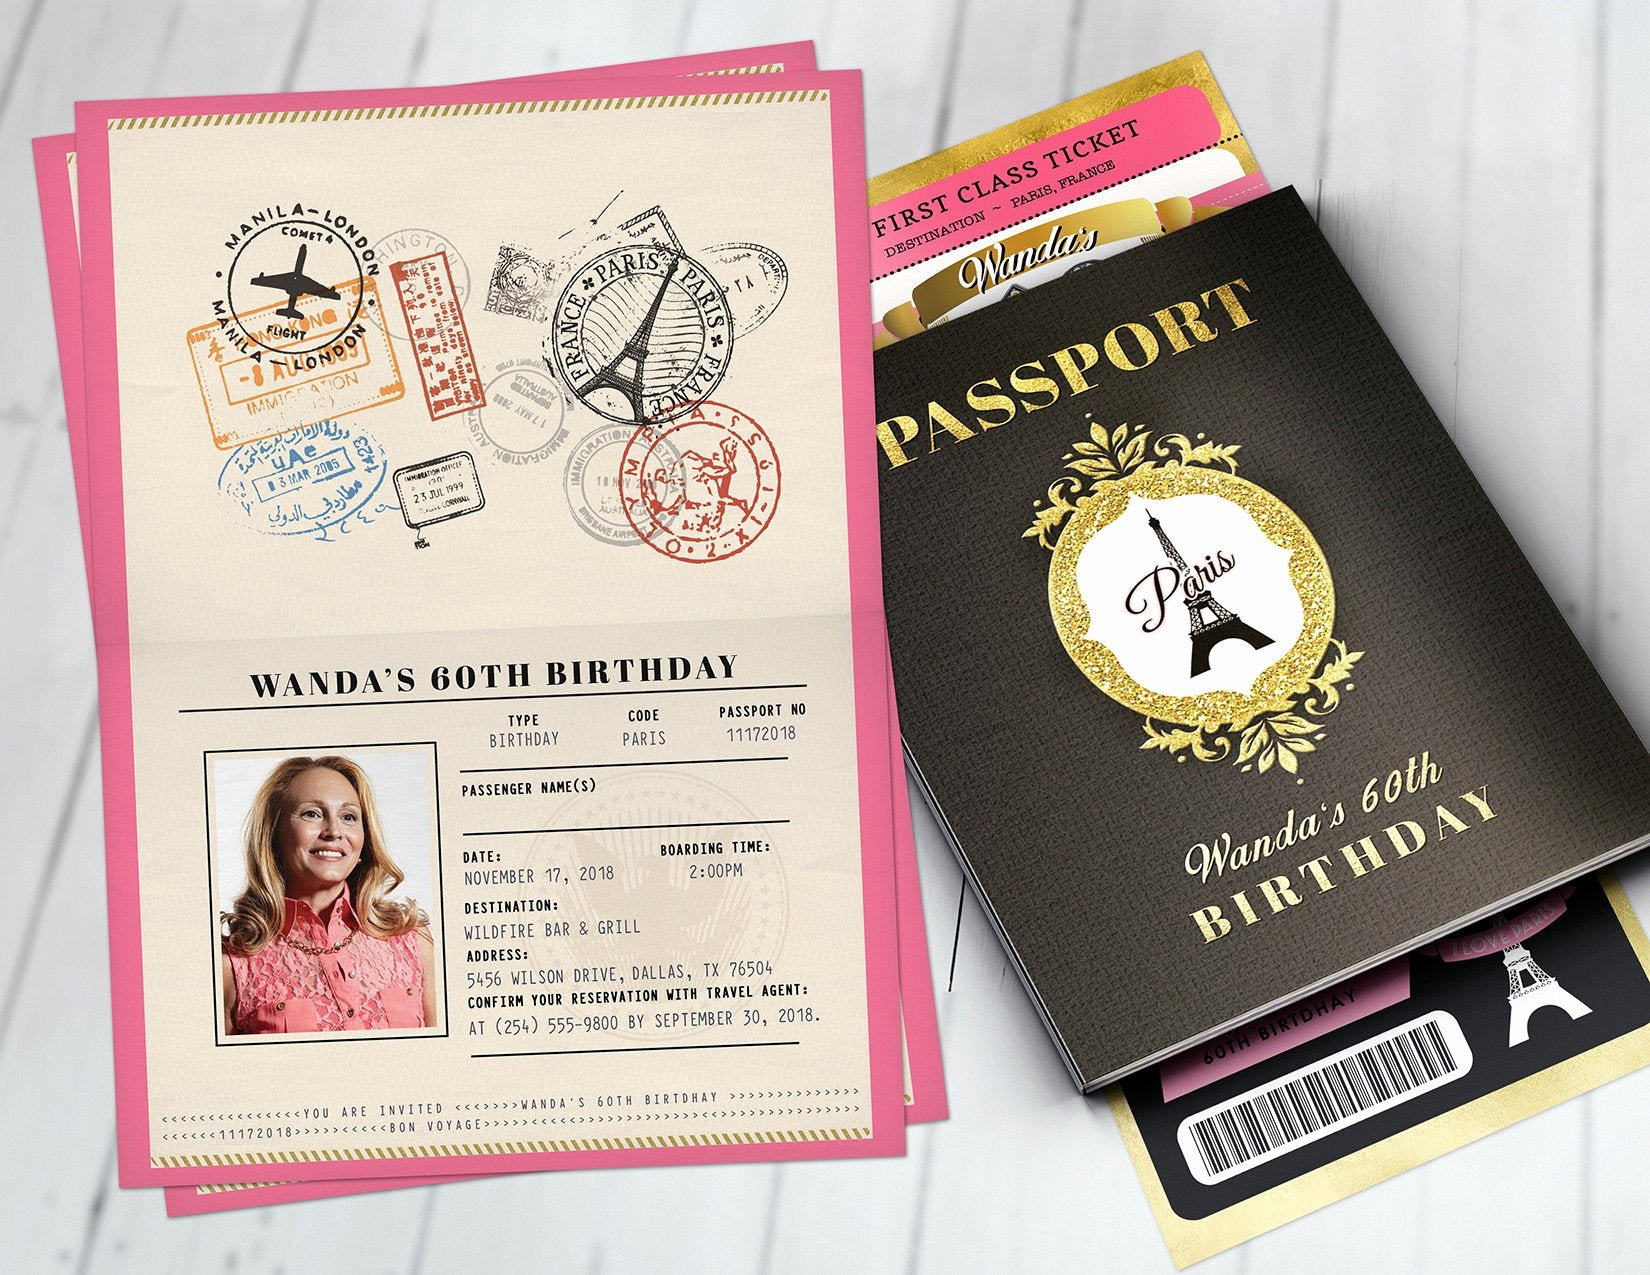 Paris Passport Invitation Template Fresh Passport and Ticket Birthday Invitation Paris Birthday